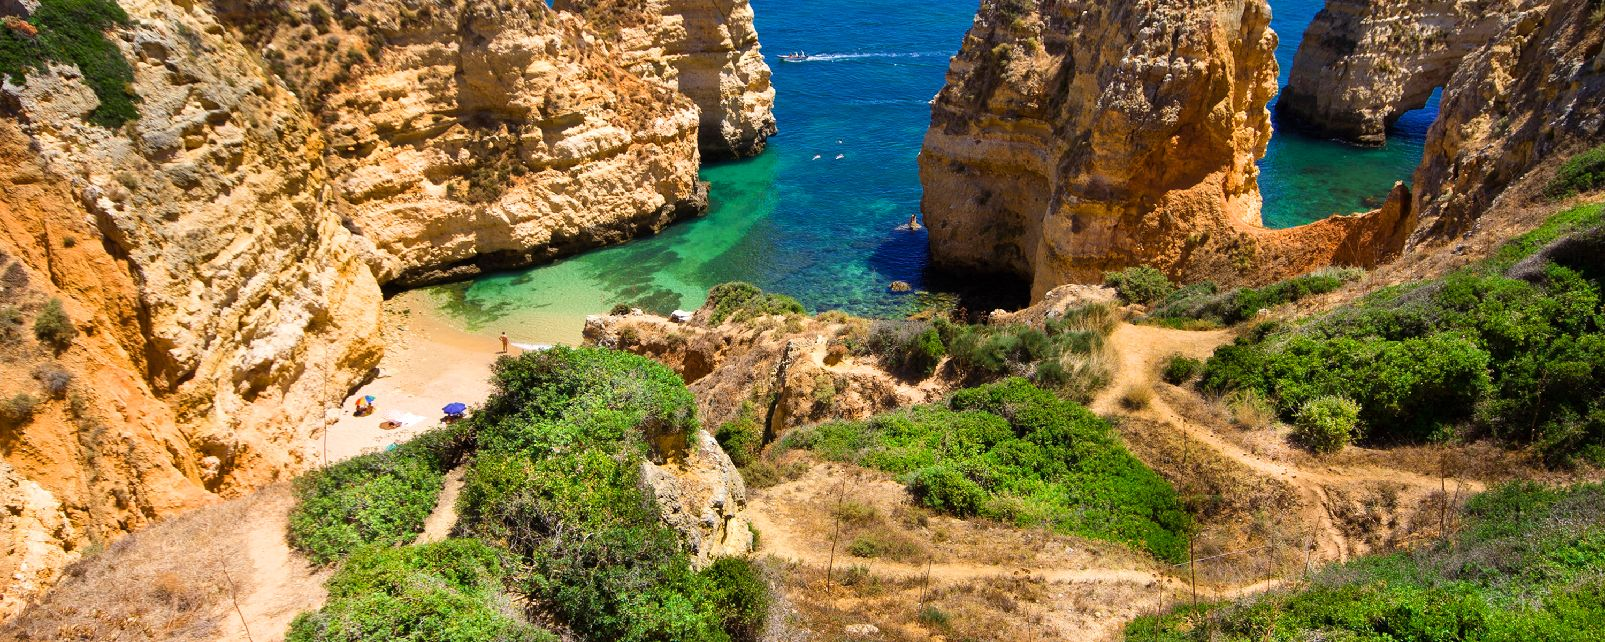 L'Algarve , On dirait le sud... , Portugal